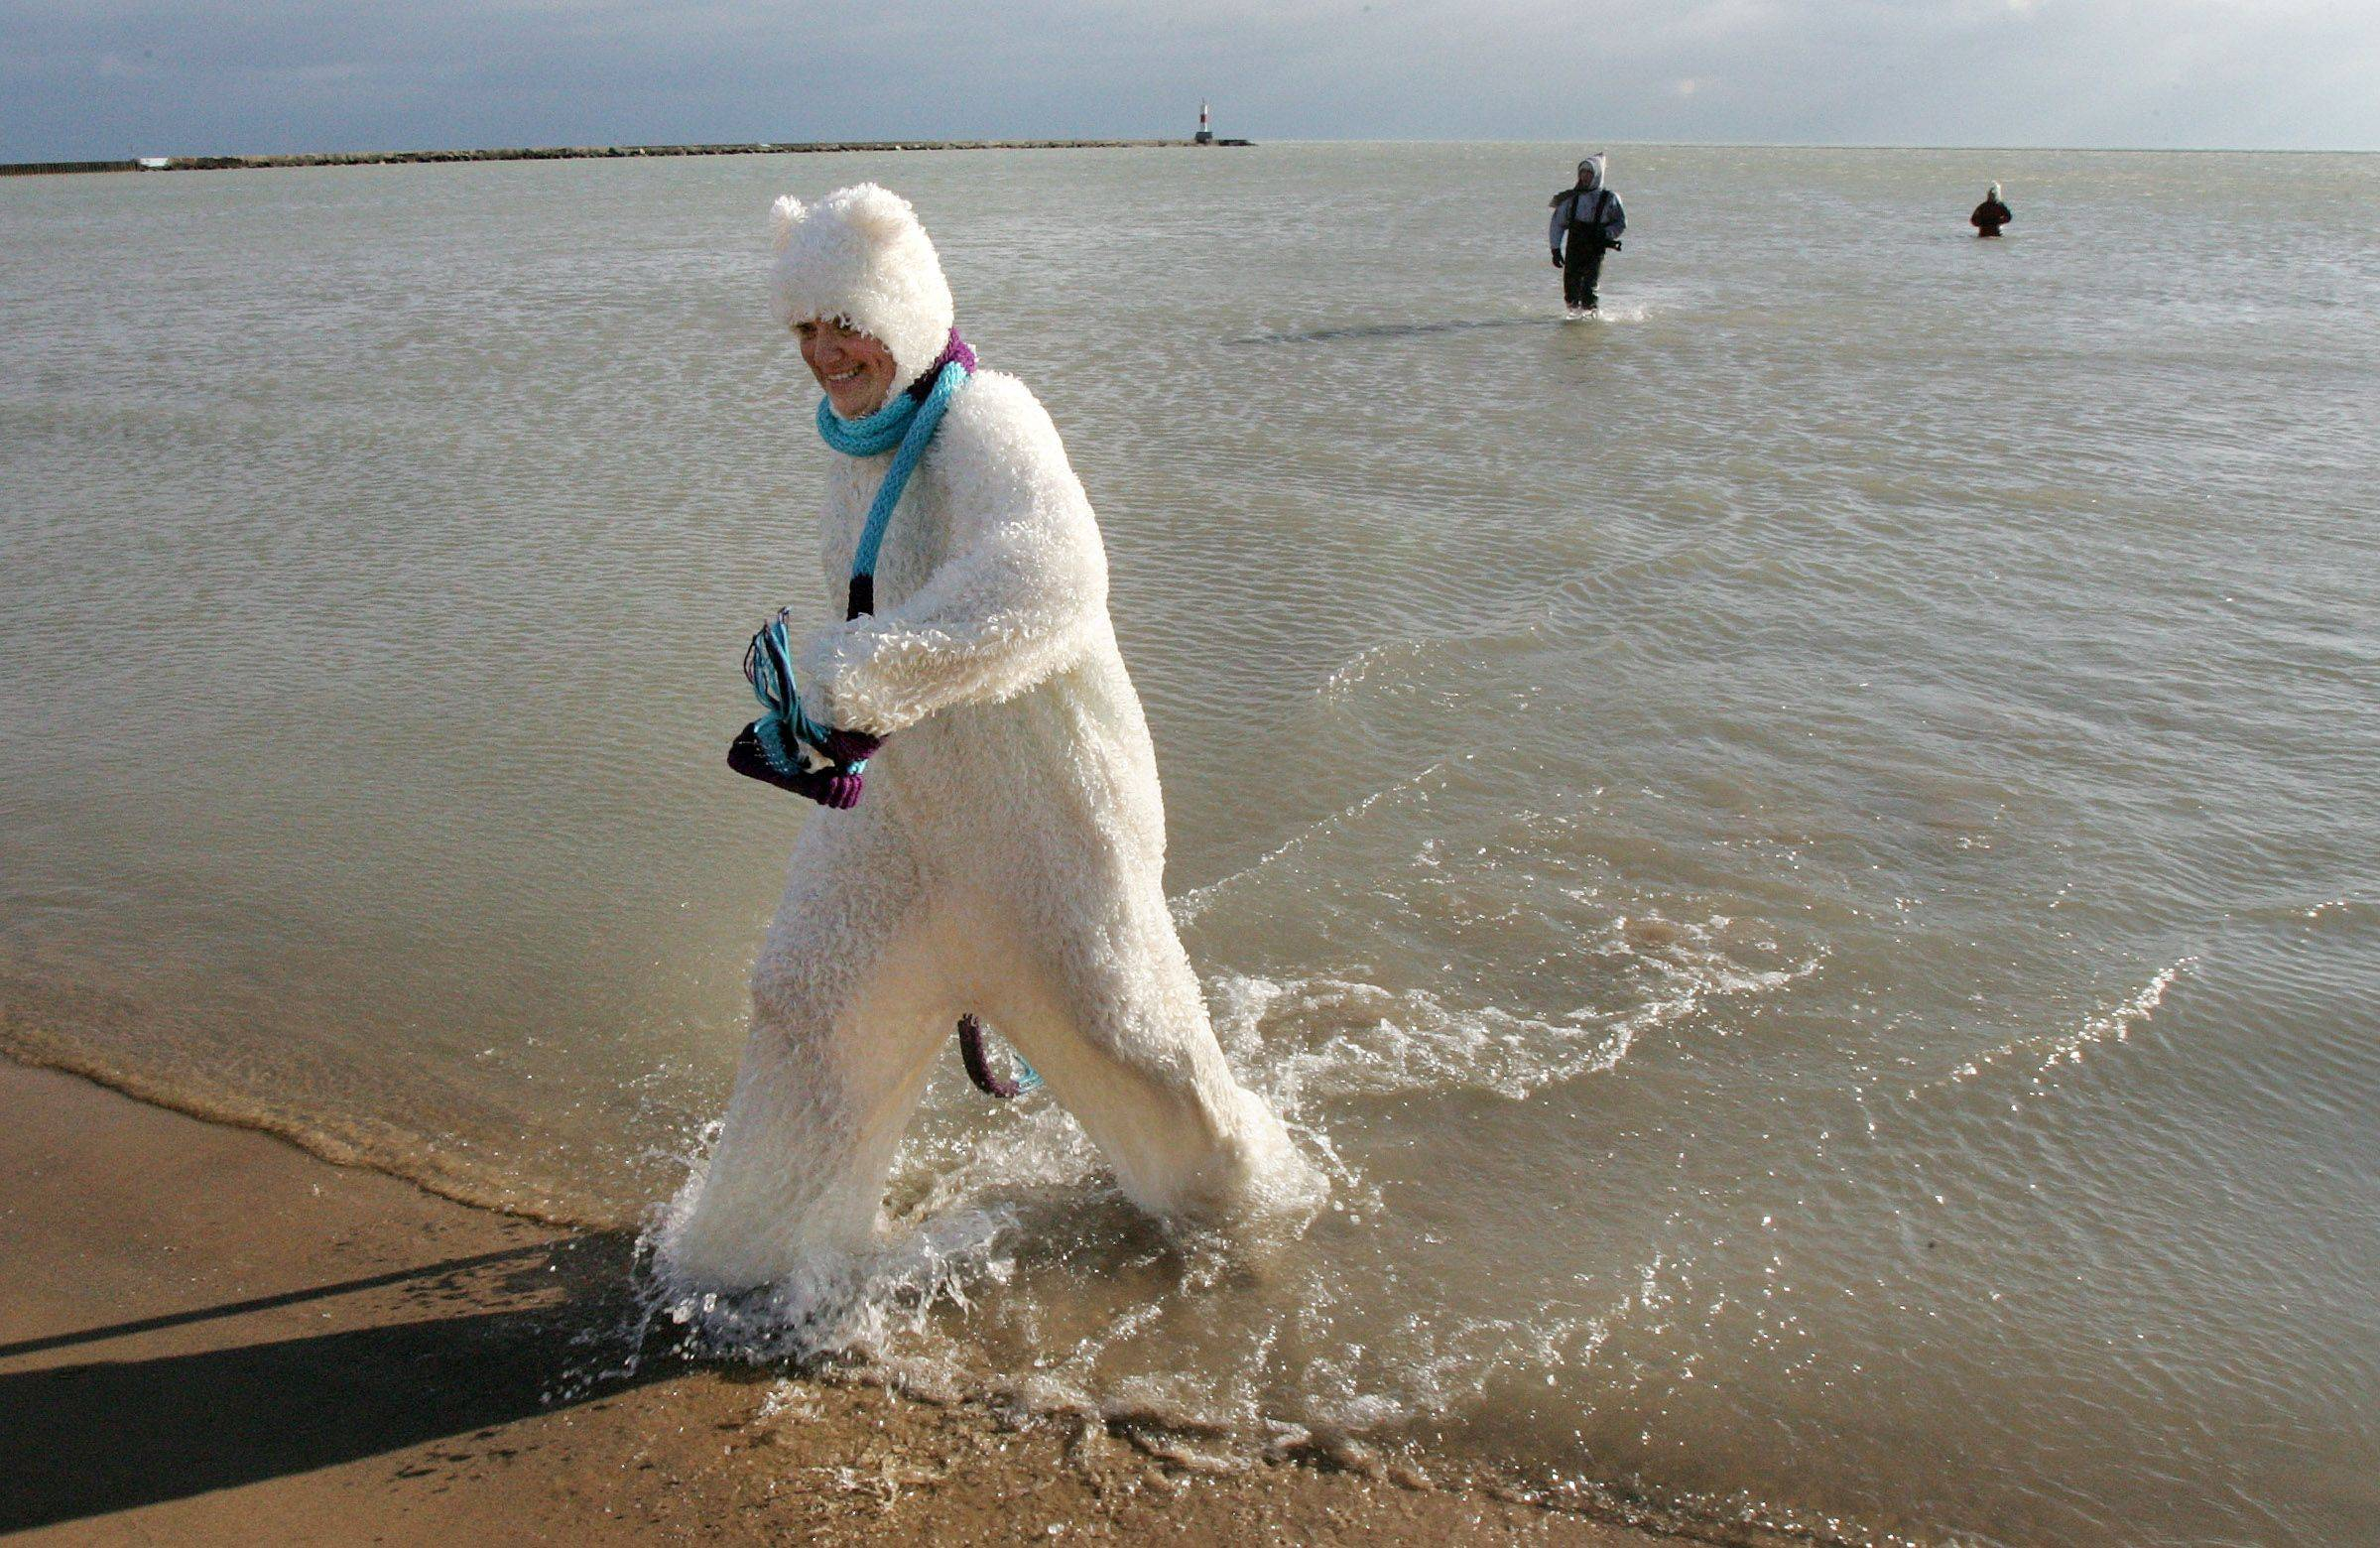 450 take the Polar Bear Plunge into Lake Michigan